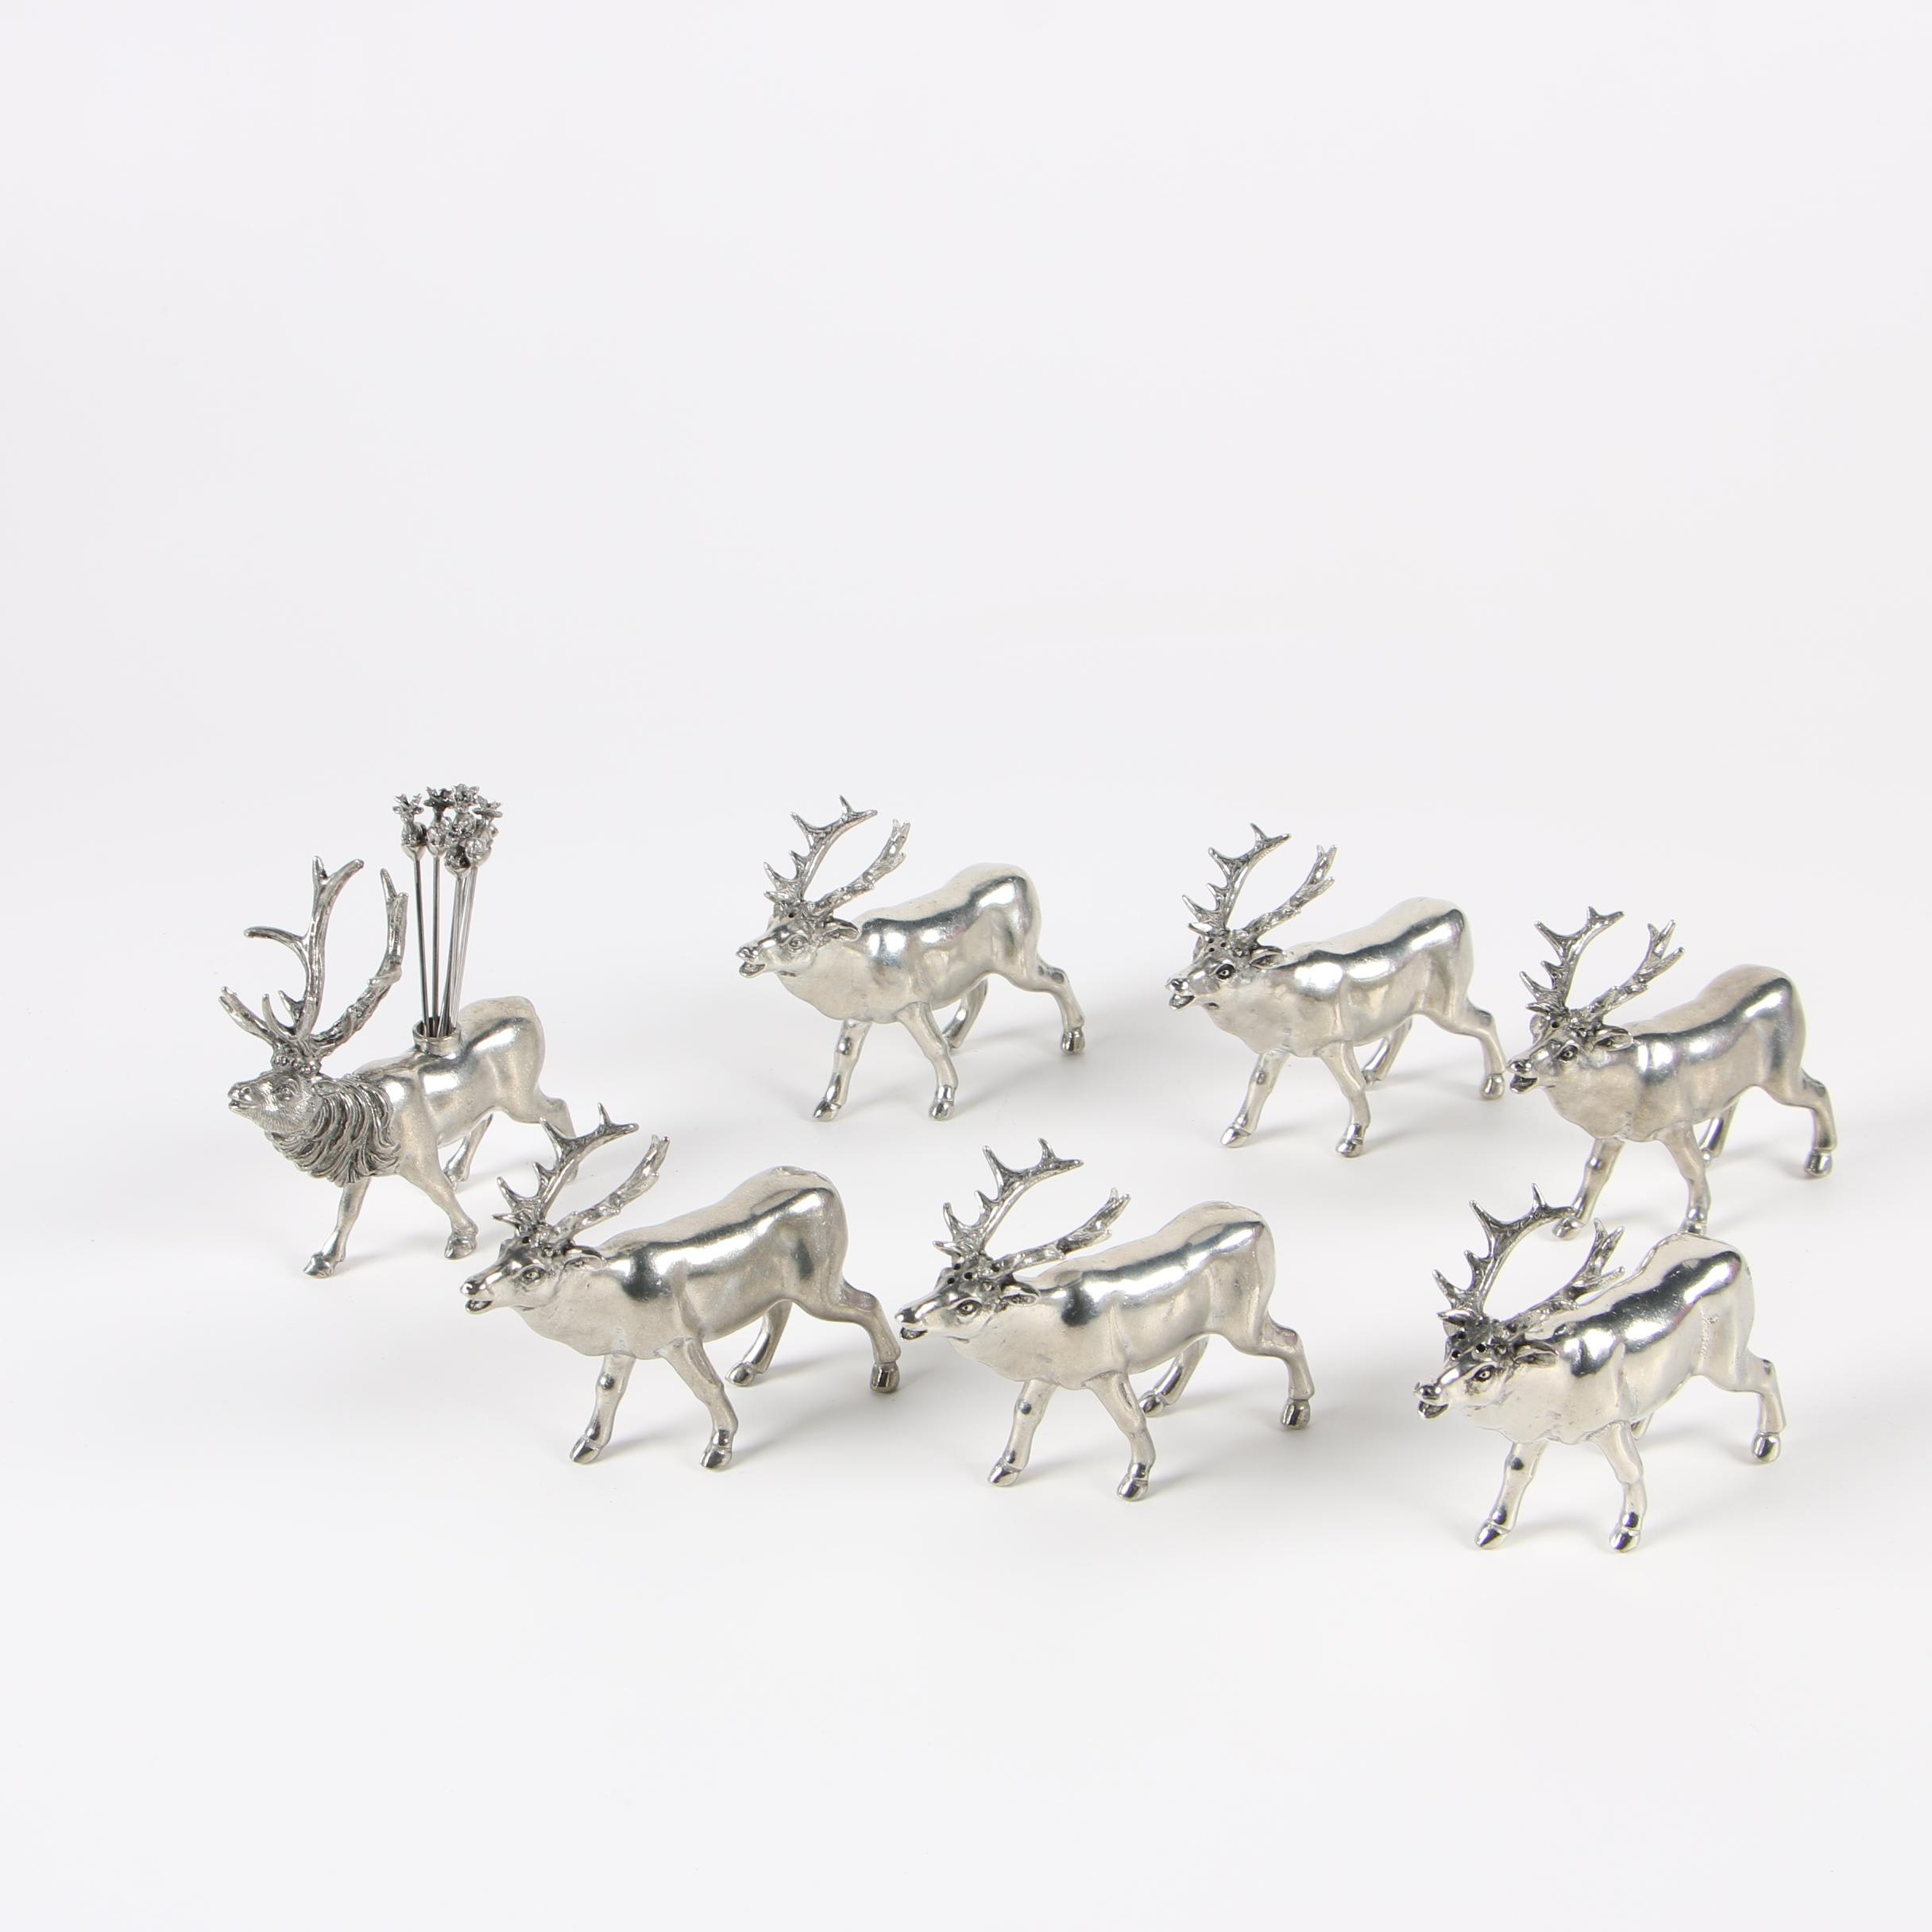 Pewter Caribou Salt and Pepper Shakers with Cocktail Pick Holder